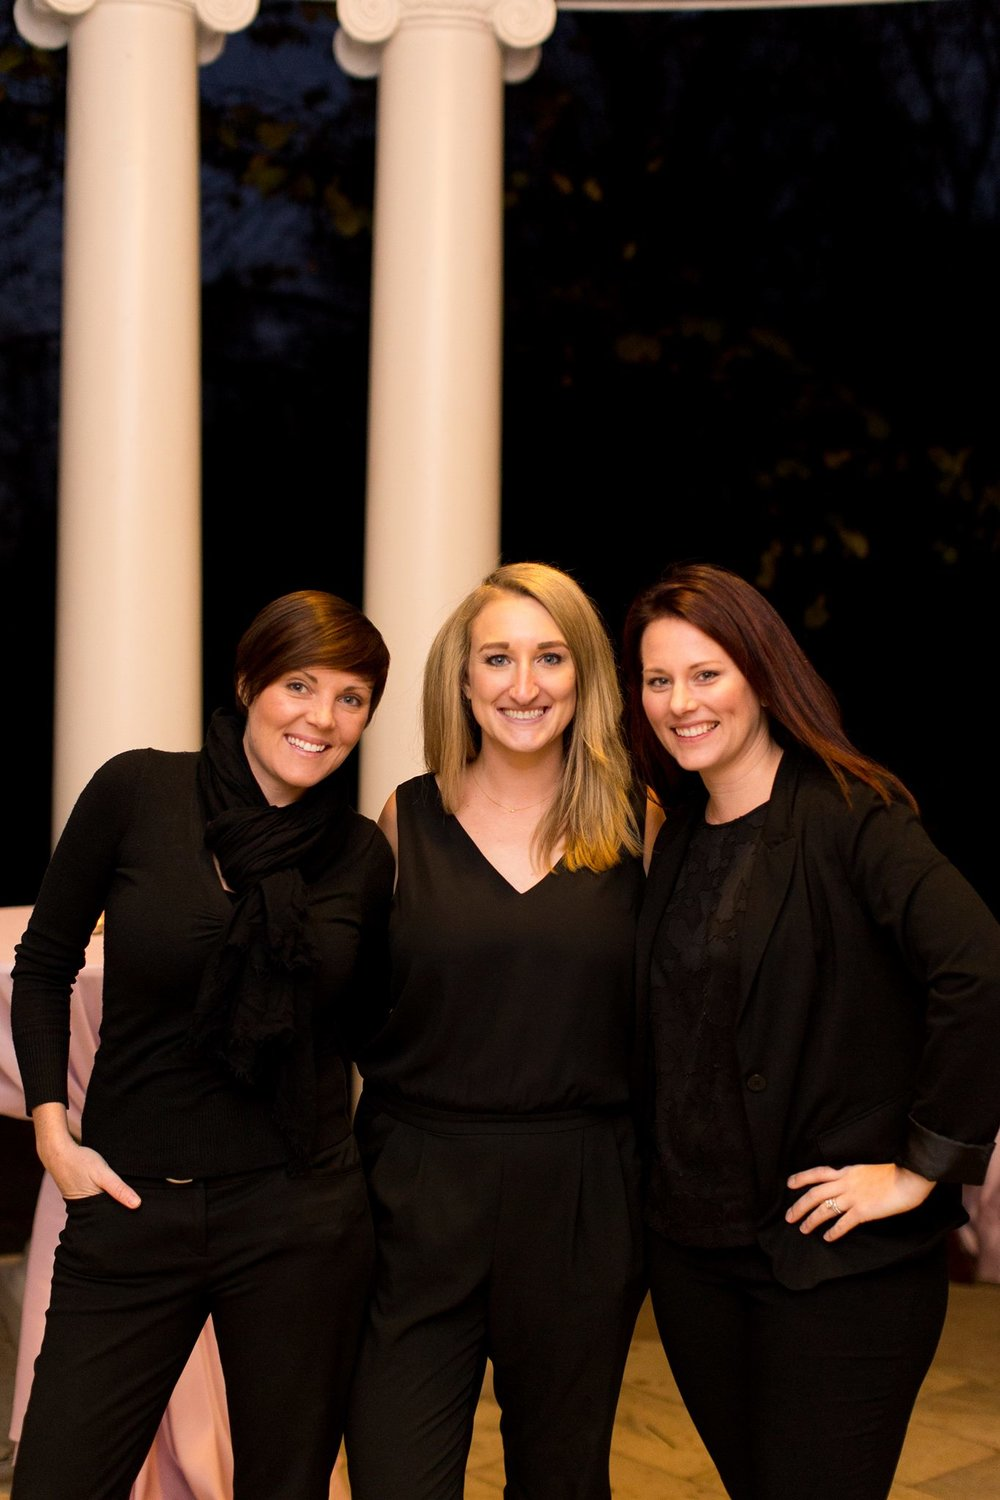 The SPE Team - Our Associate Planners & Event Assistants